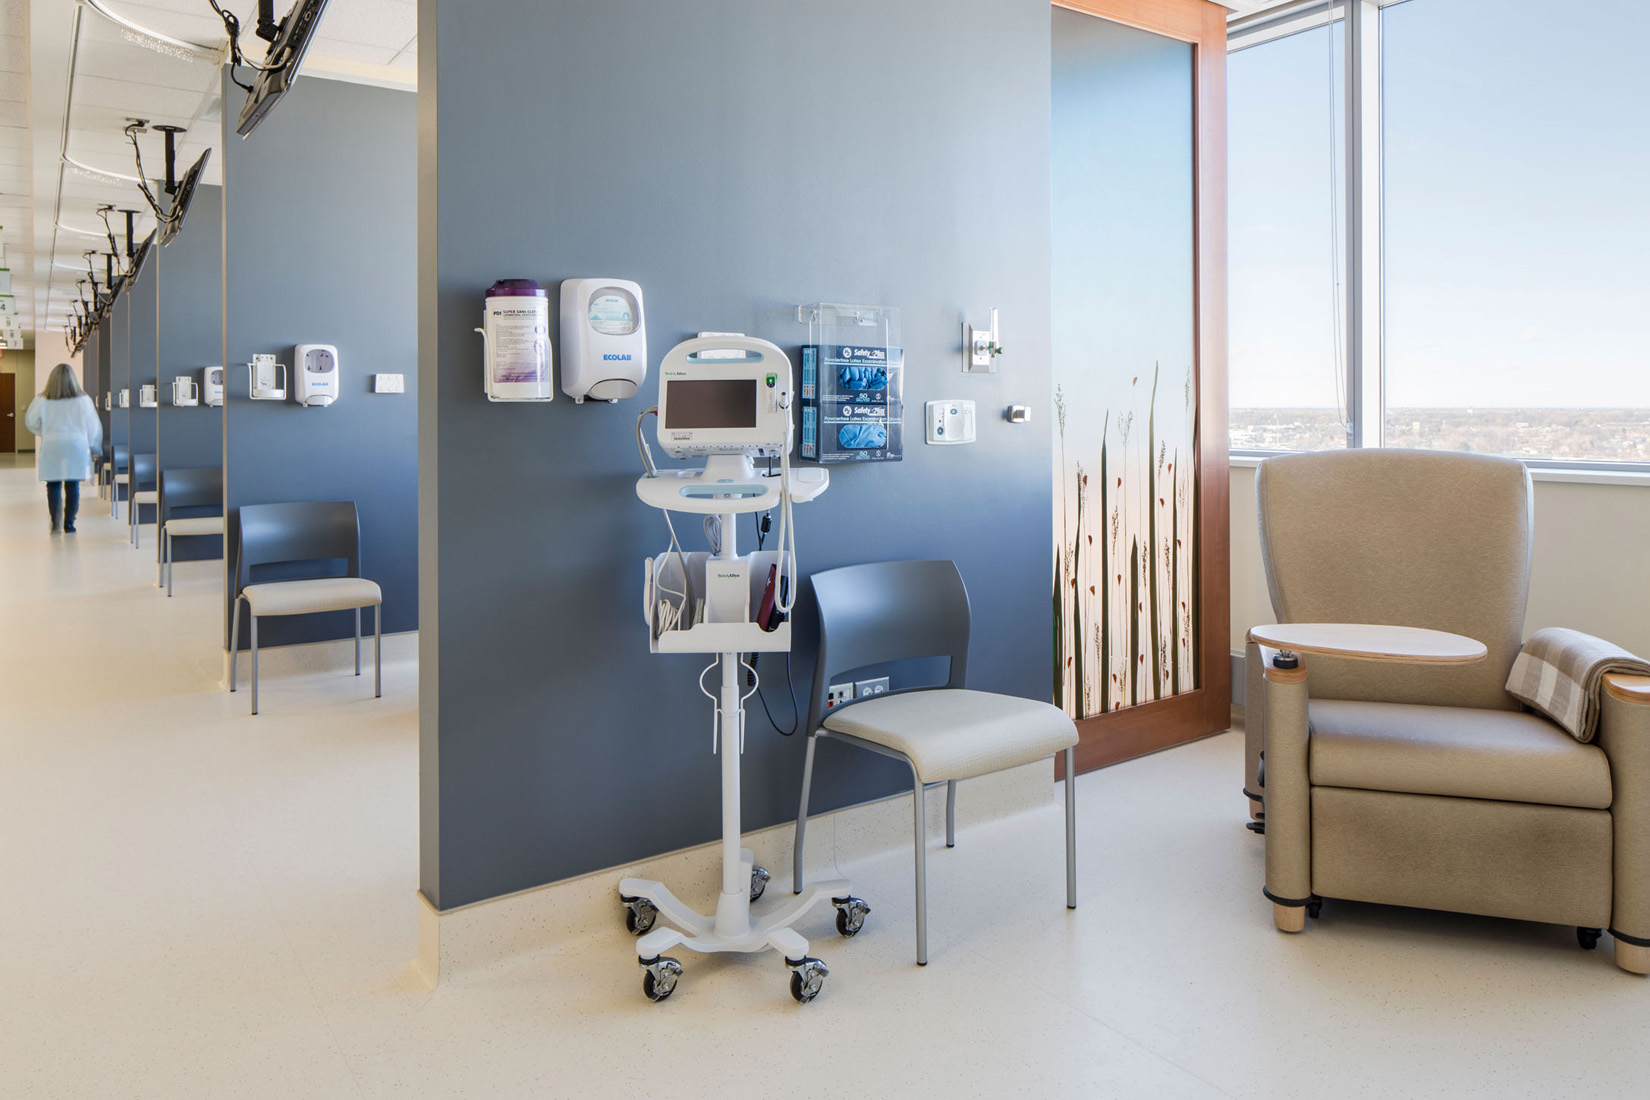 Design excellence awards american institute of architects for Medical design consultancy